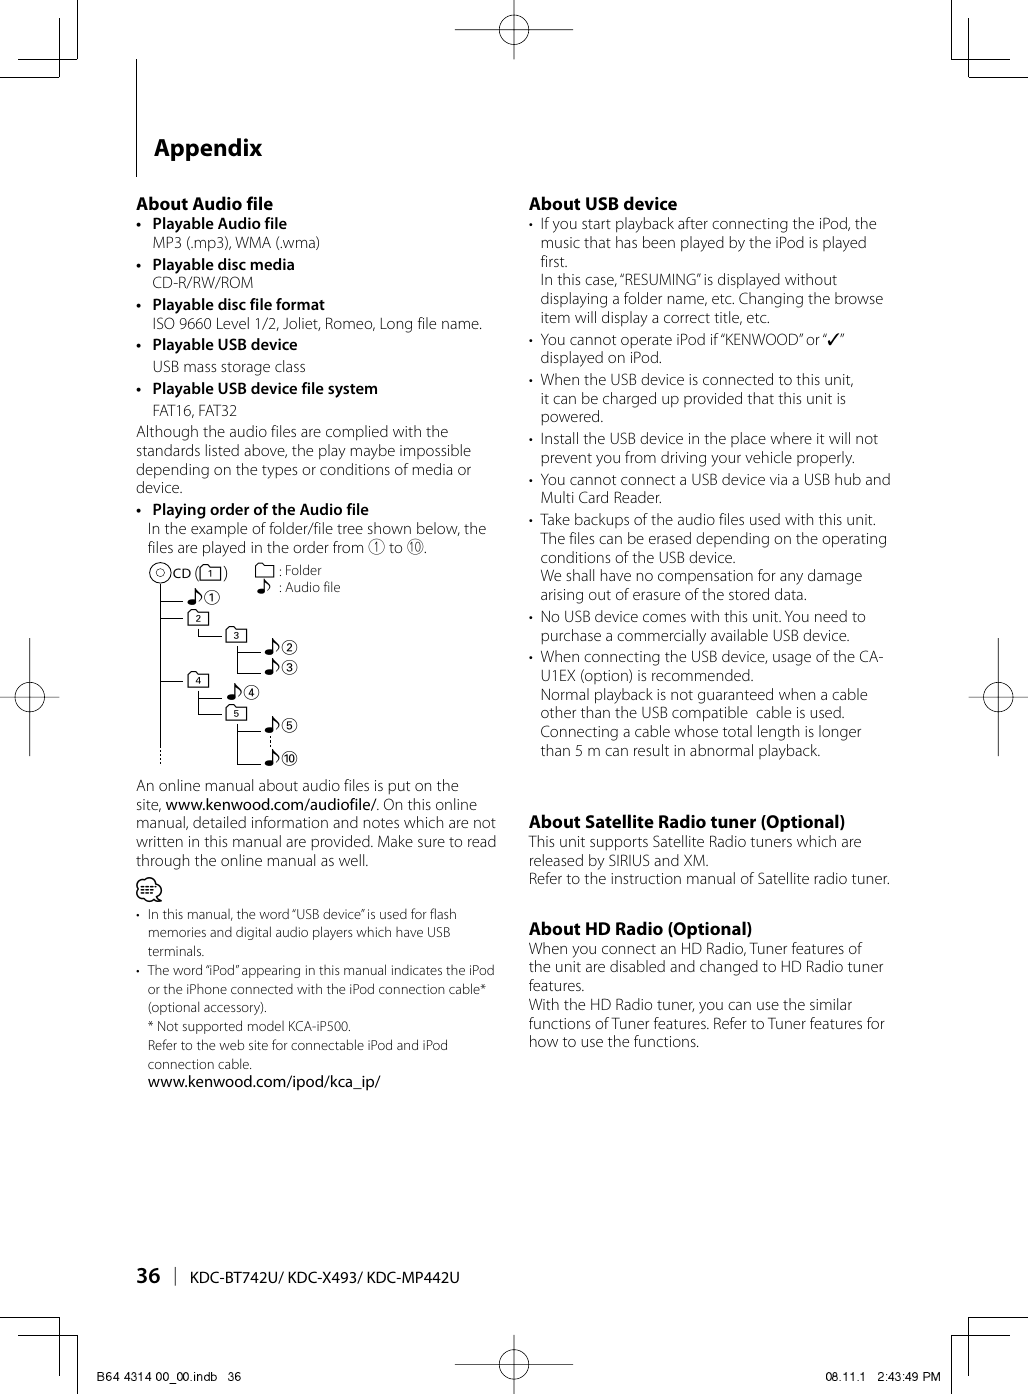 hight resolution of kenwoodexcelonkdcx493usersmanual263232 373101021 user guide page 36 png